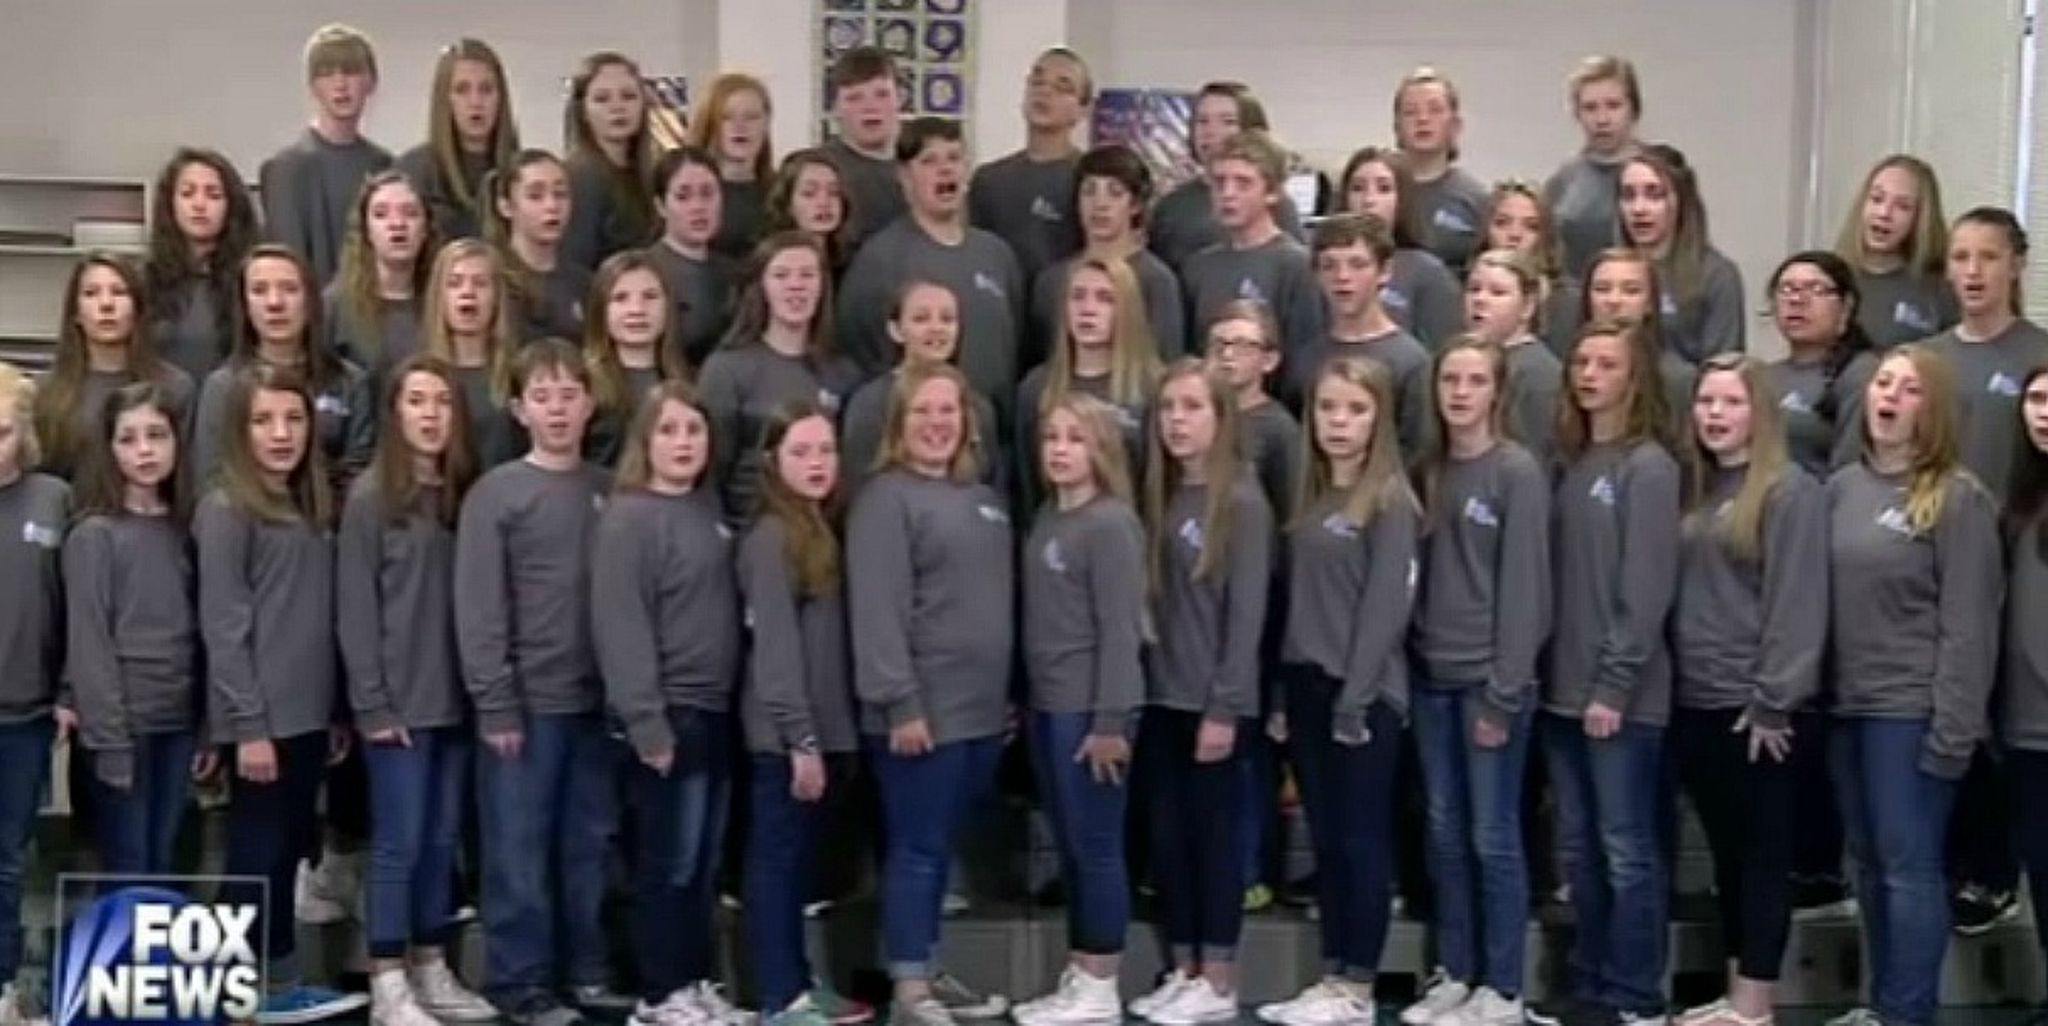 Middle School Choir Told To Stop Singing National Anthem